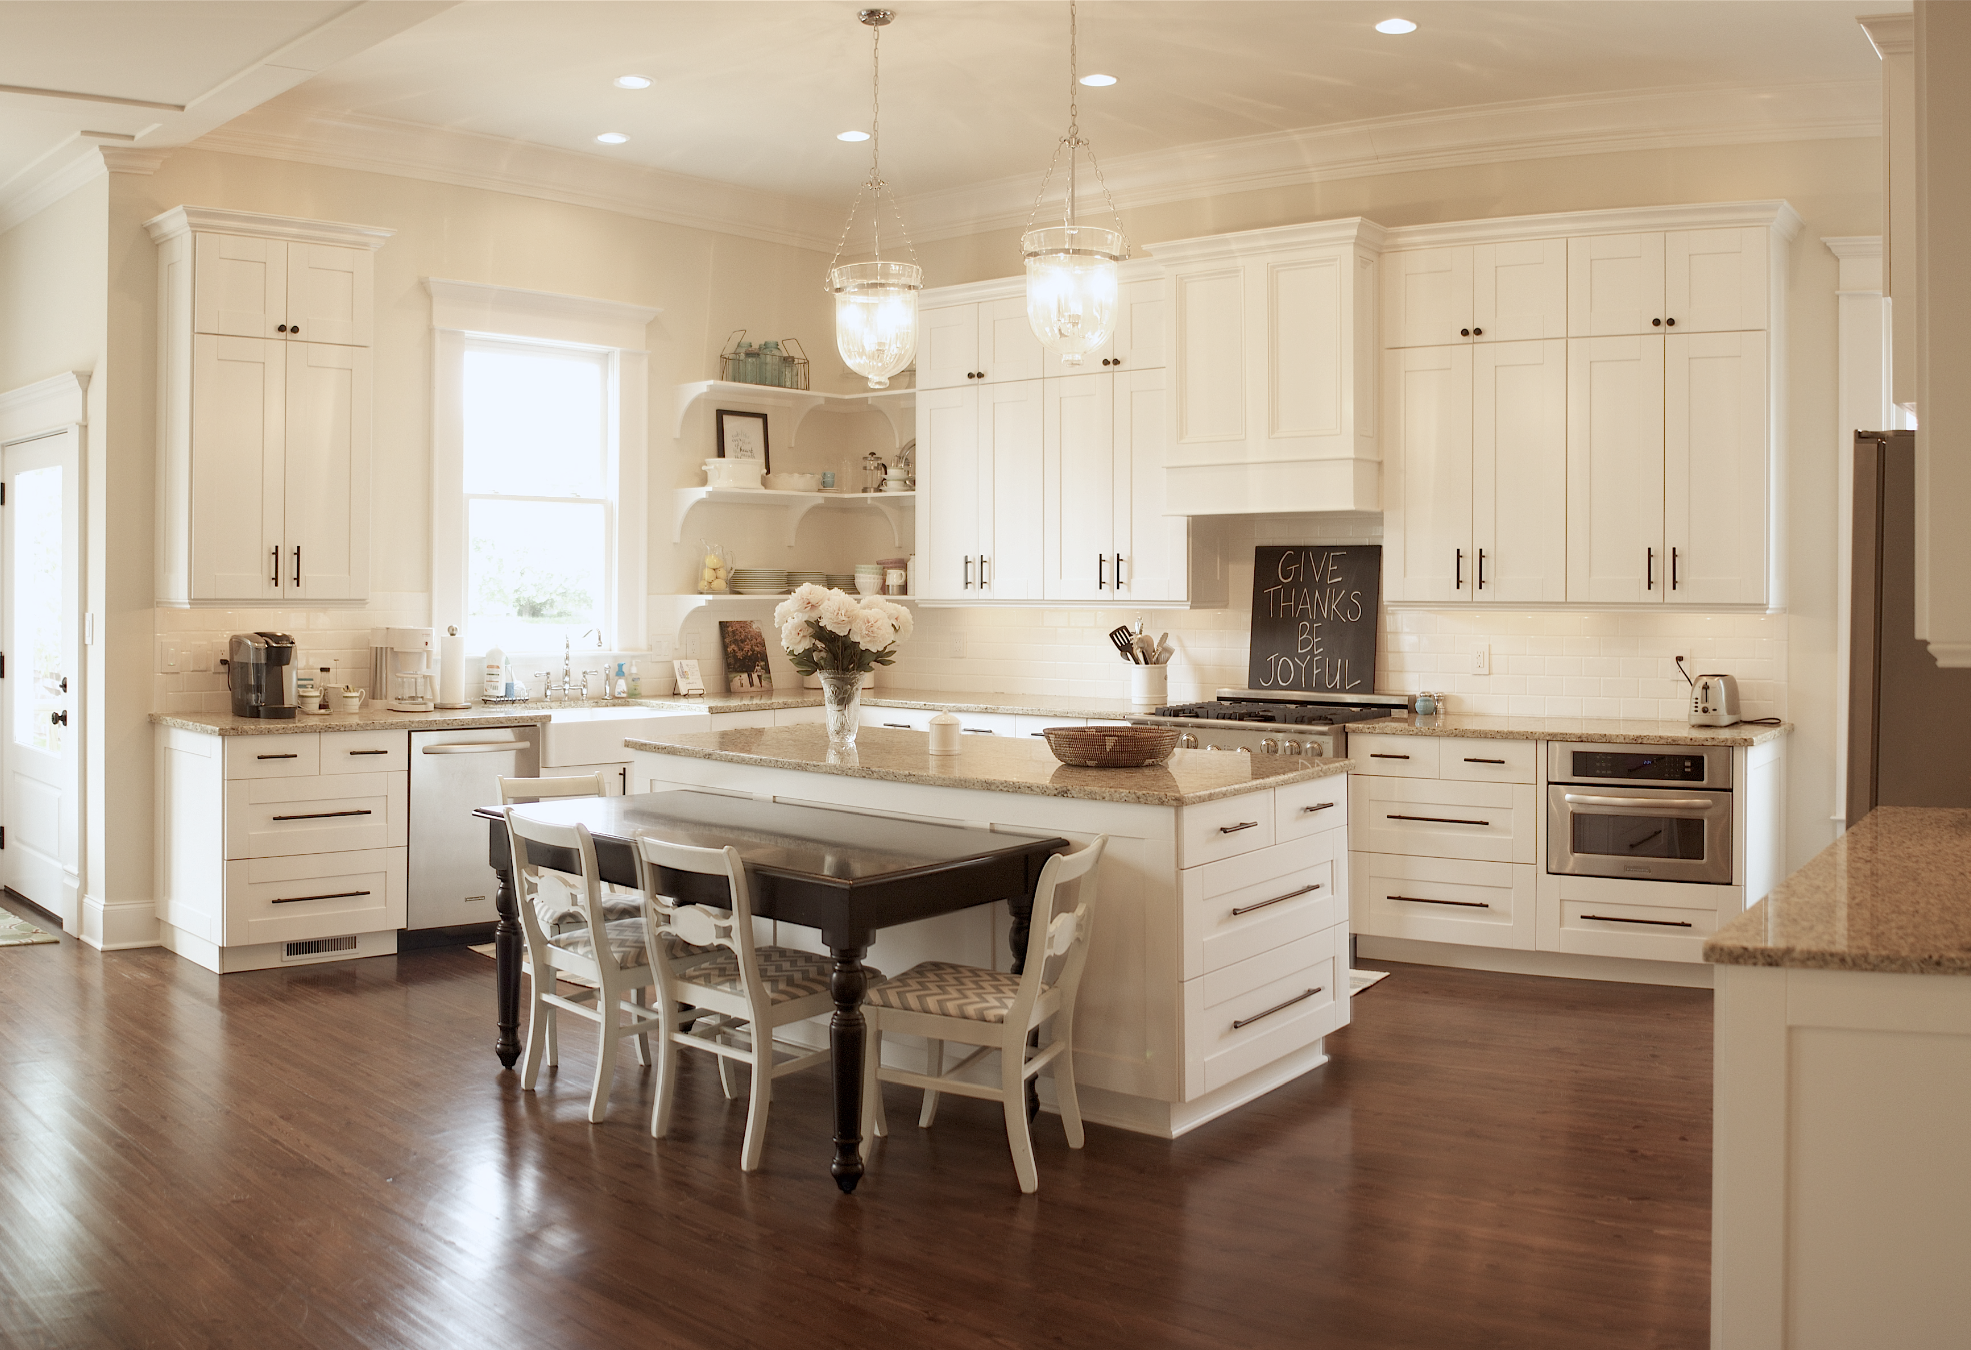 The island kitchen design - Really Love This Cabinet Style All The Bottom Cabinets Are Drawers And The Island